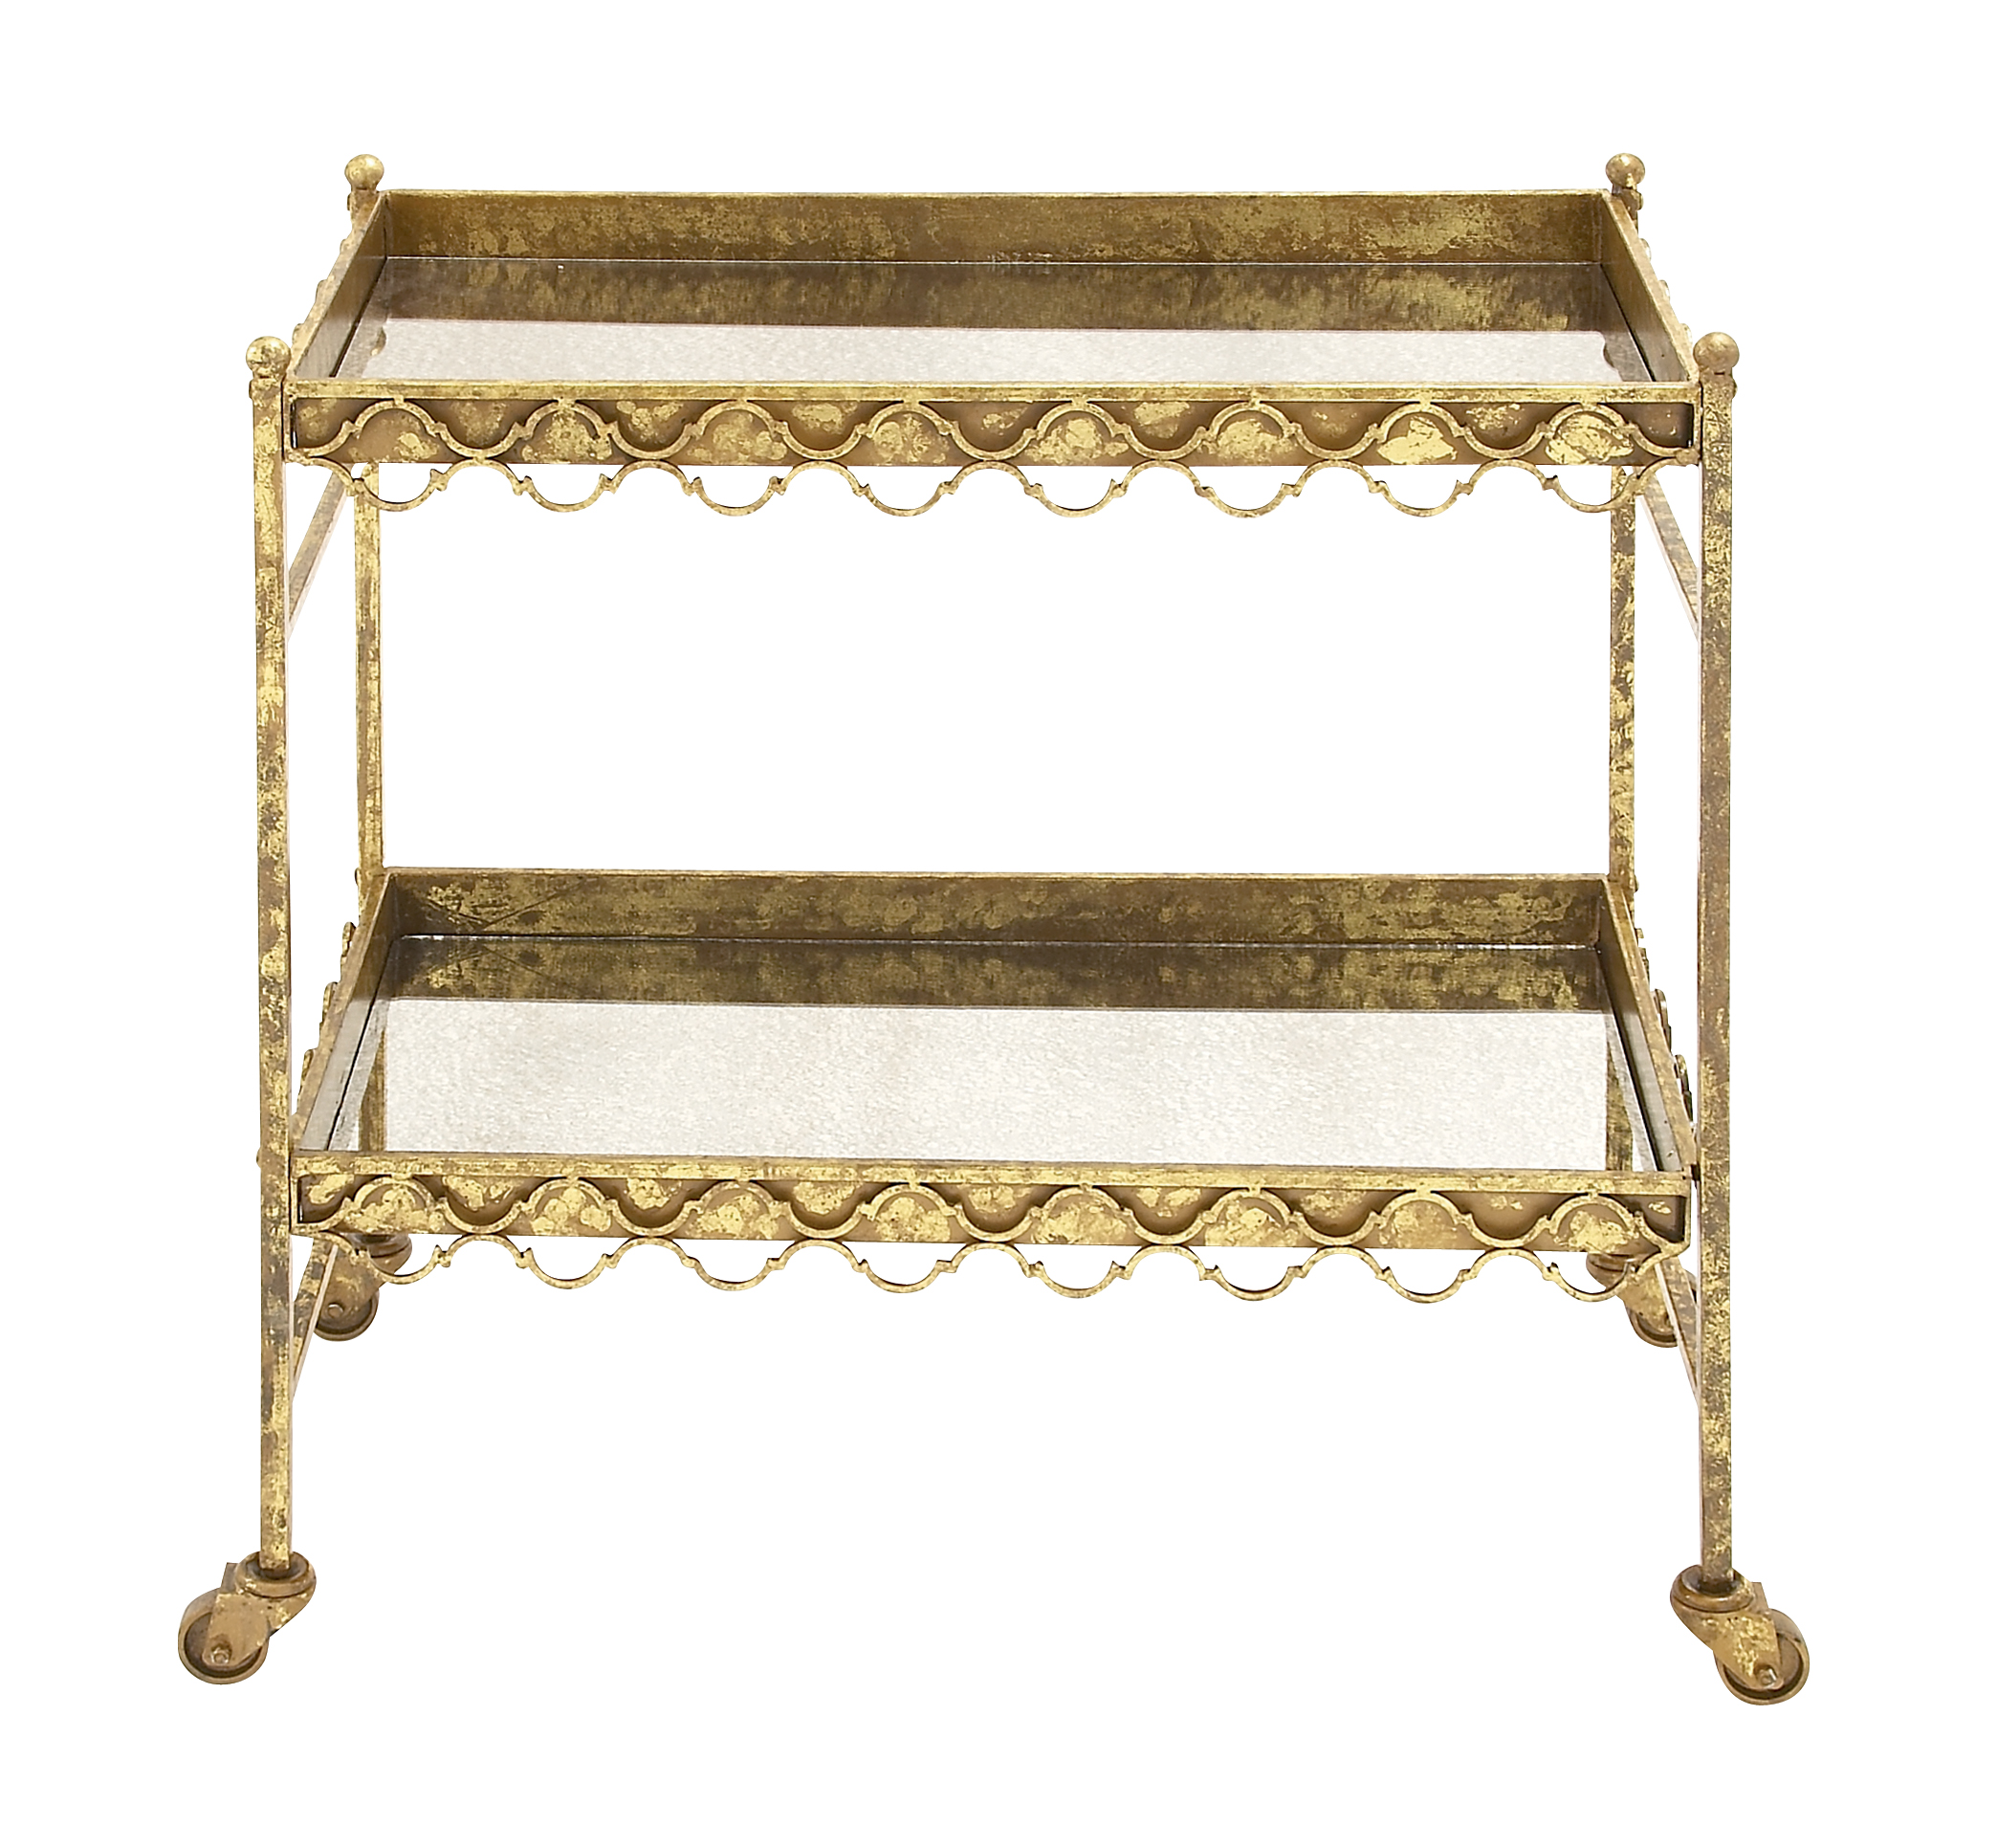 Decmode Traditional 32 X 30 Inch Distressed Gold Iron and Glass Two-Tier Bar Cart, Gold